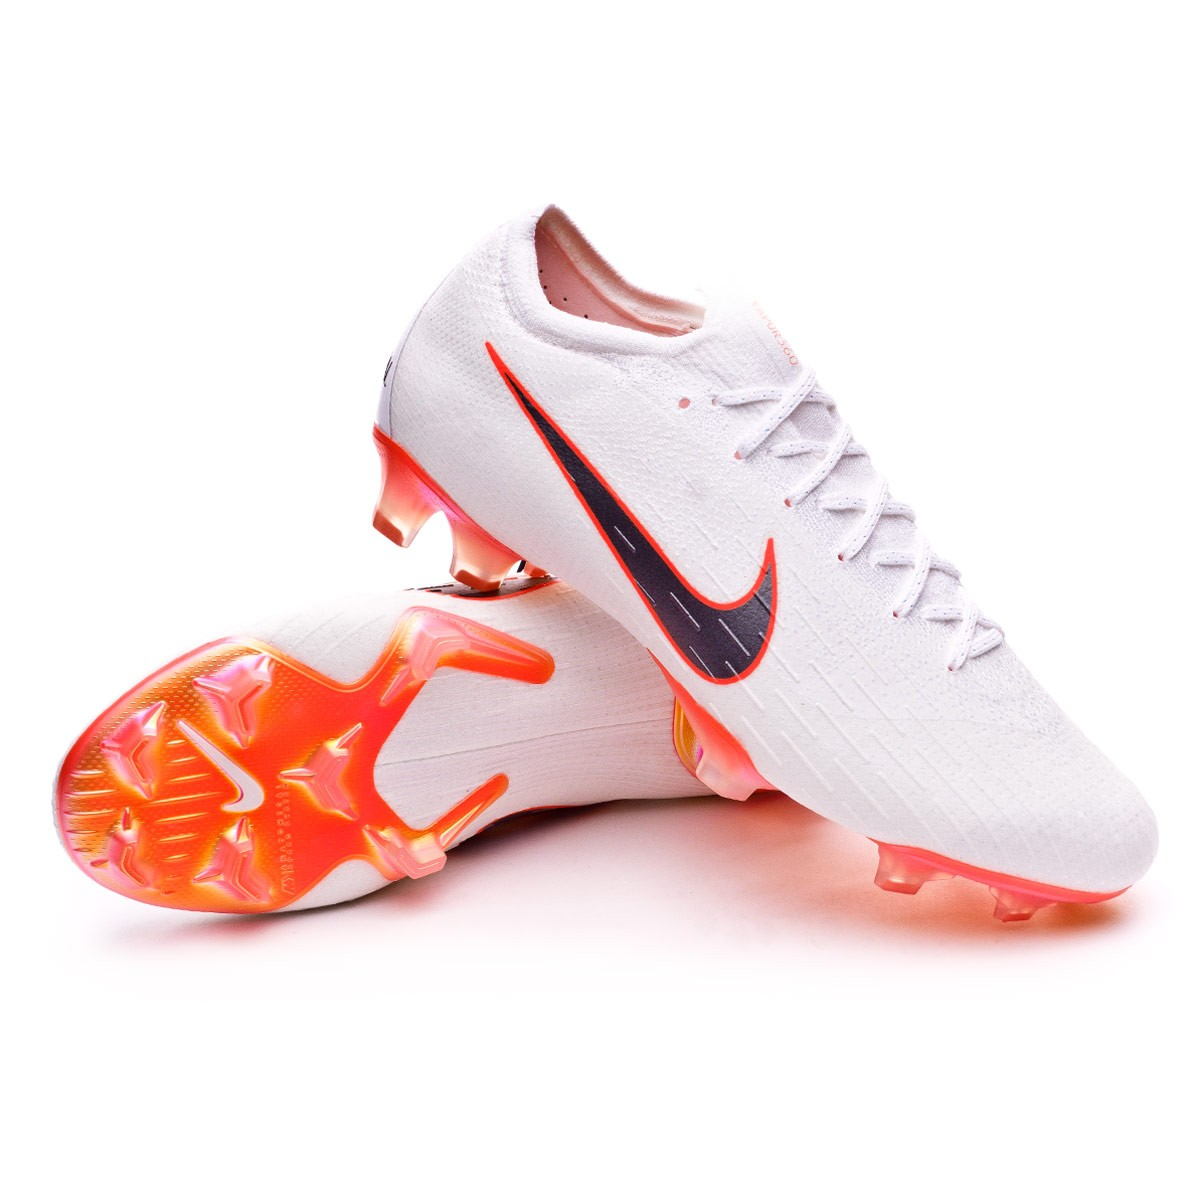 33f1cc93b Football Boots Nike Mercurial Vapor XII Elite FG White-Metallic cool ...